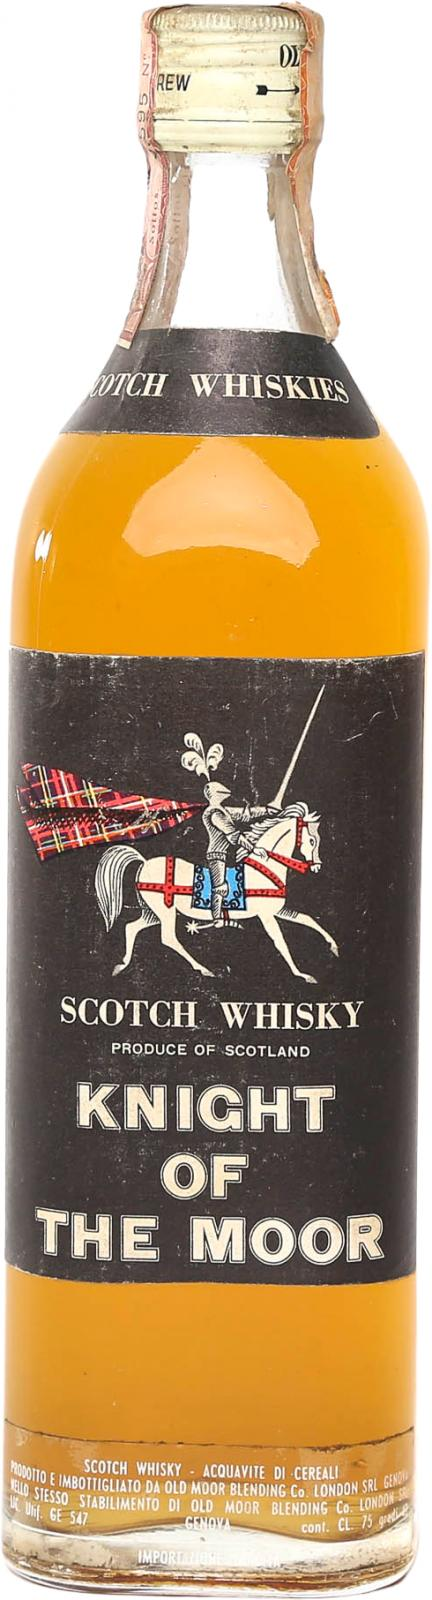 Knight of the Moor Scotch Whisky